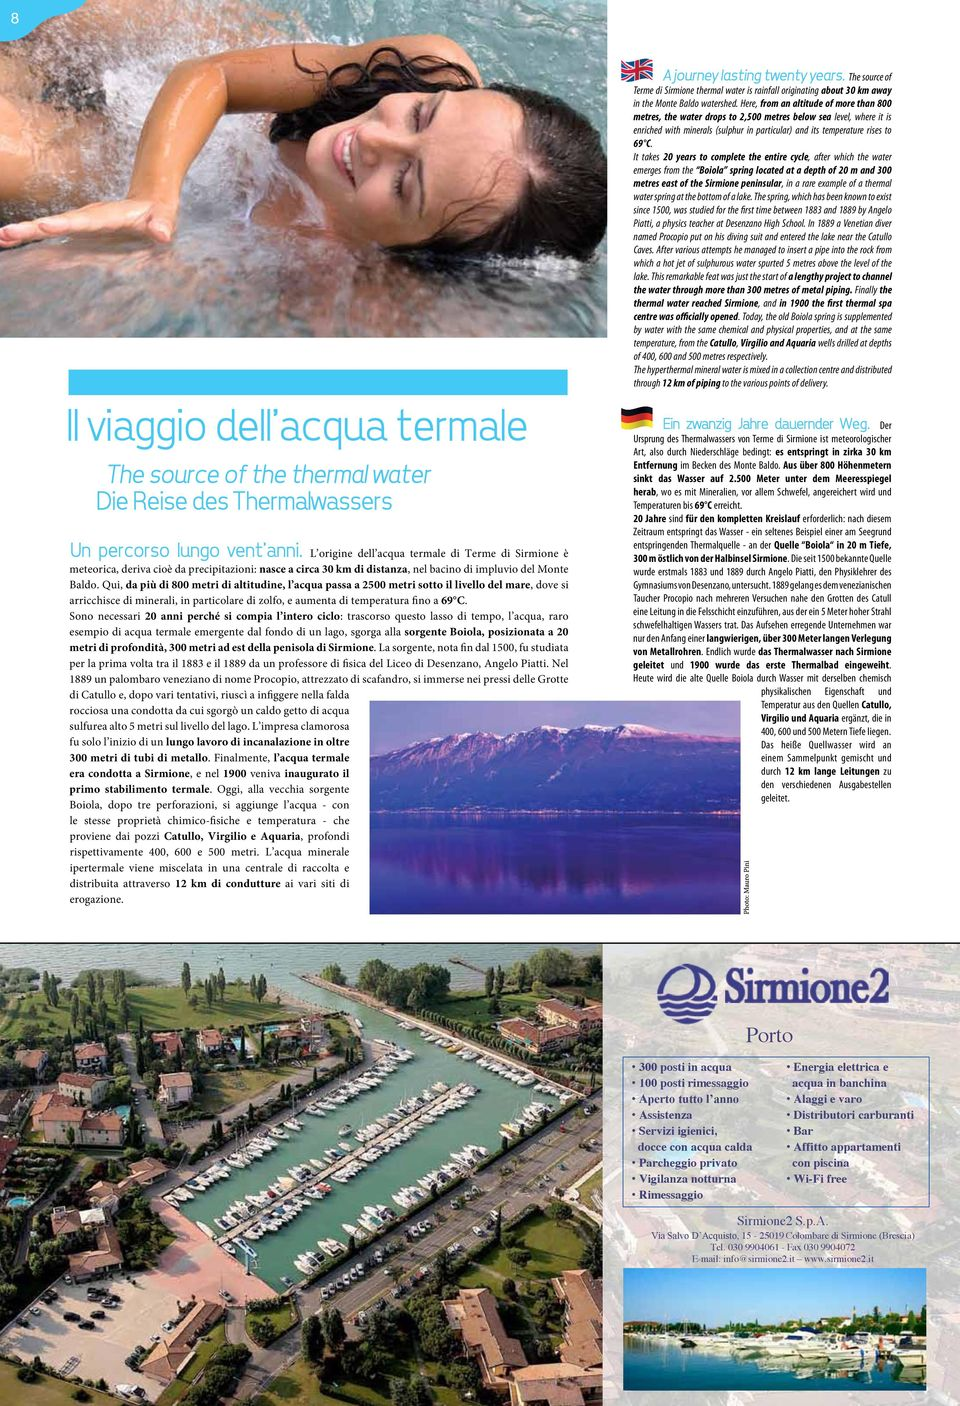 It takes 20 years to complete the entire cycle, after which the water emerges from the Boiola spring located at a depth of 20 m and 300 metres east of the Sirmione peninsular, in a rare example of a